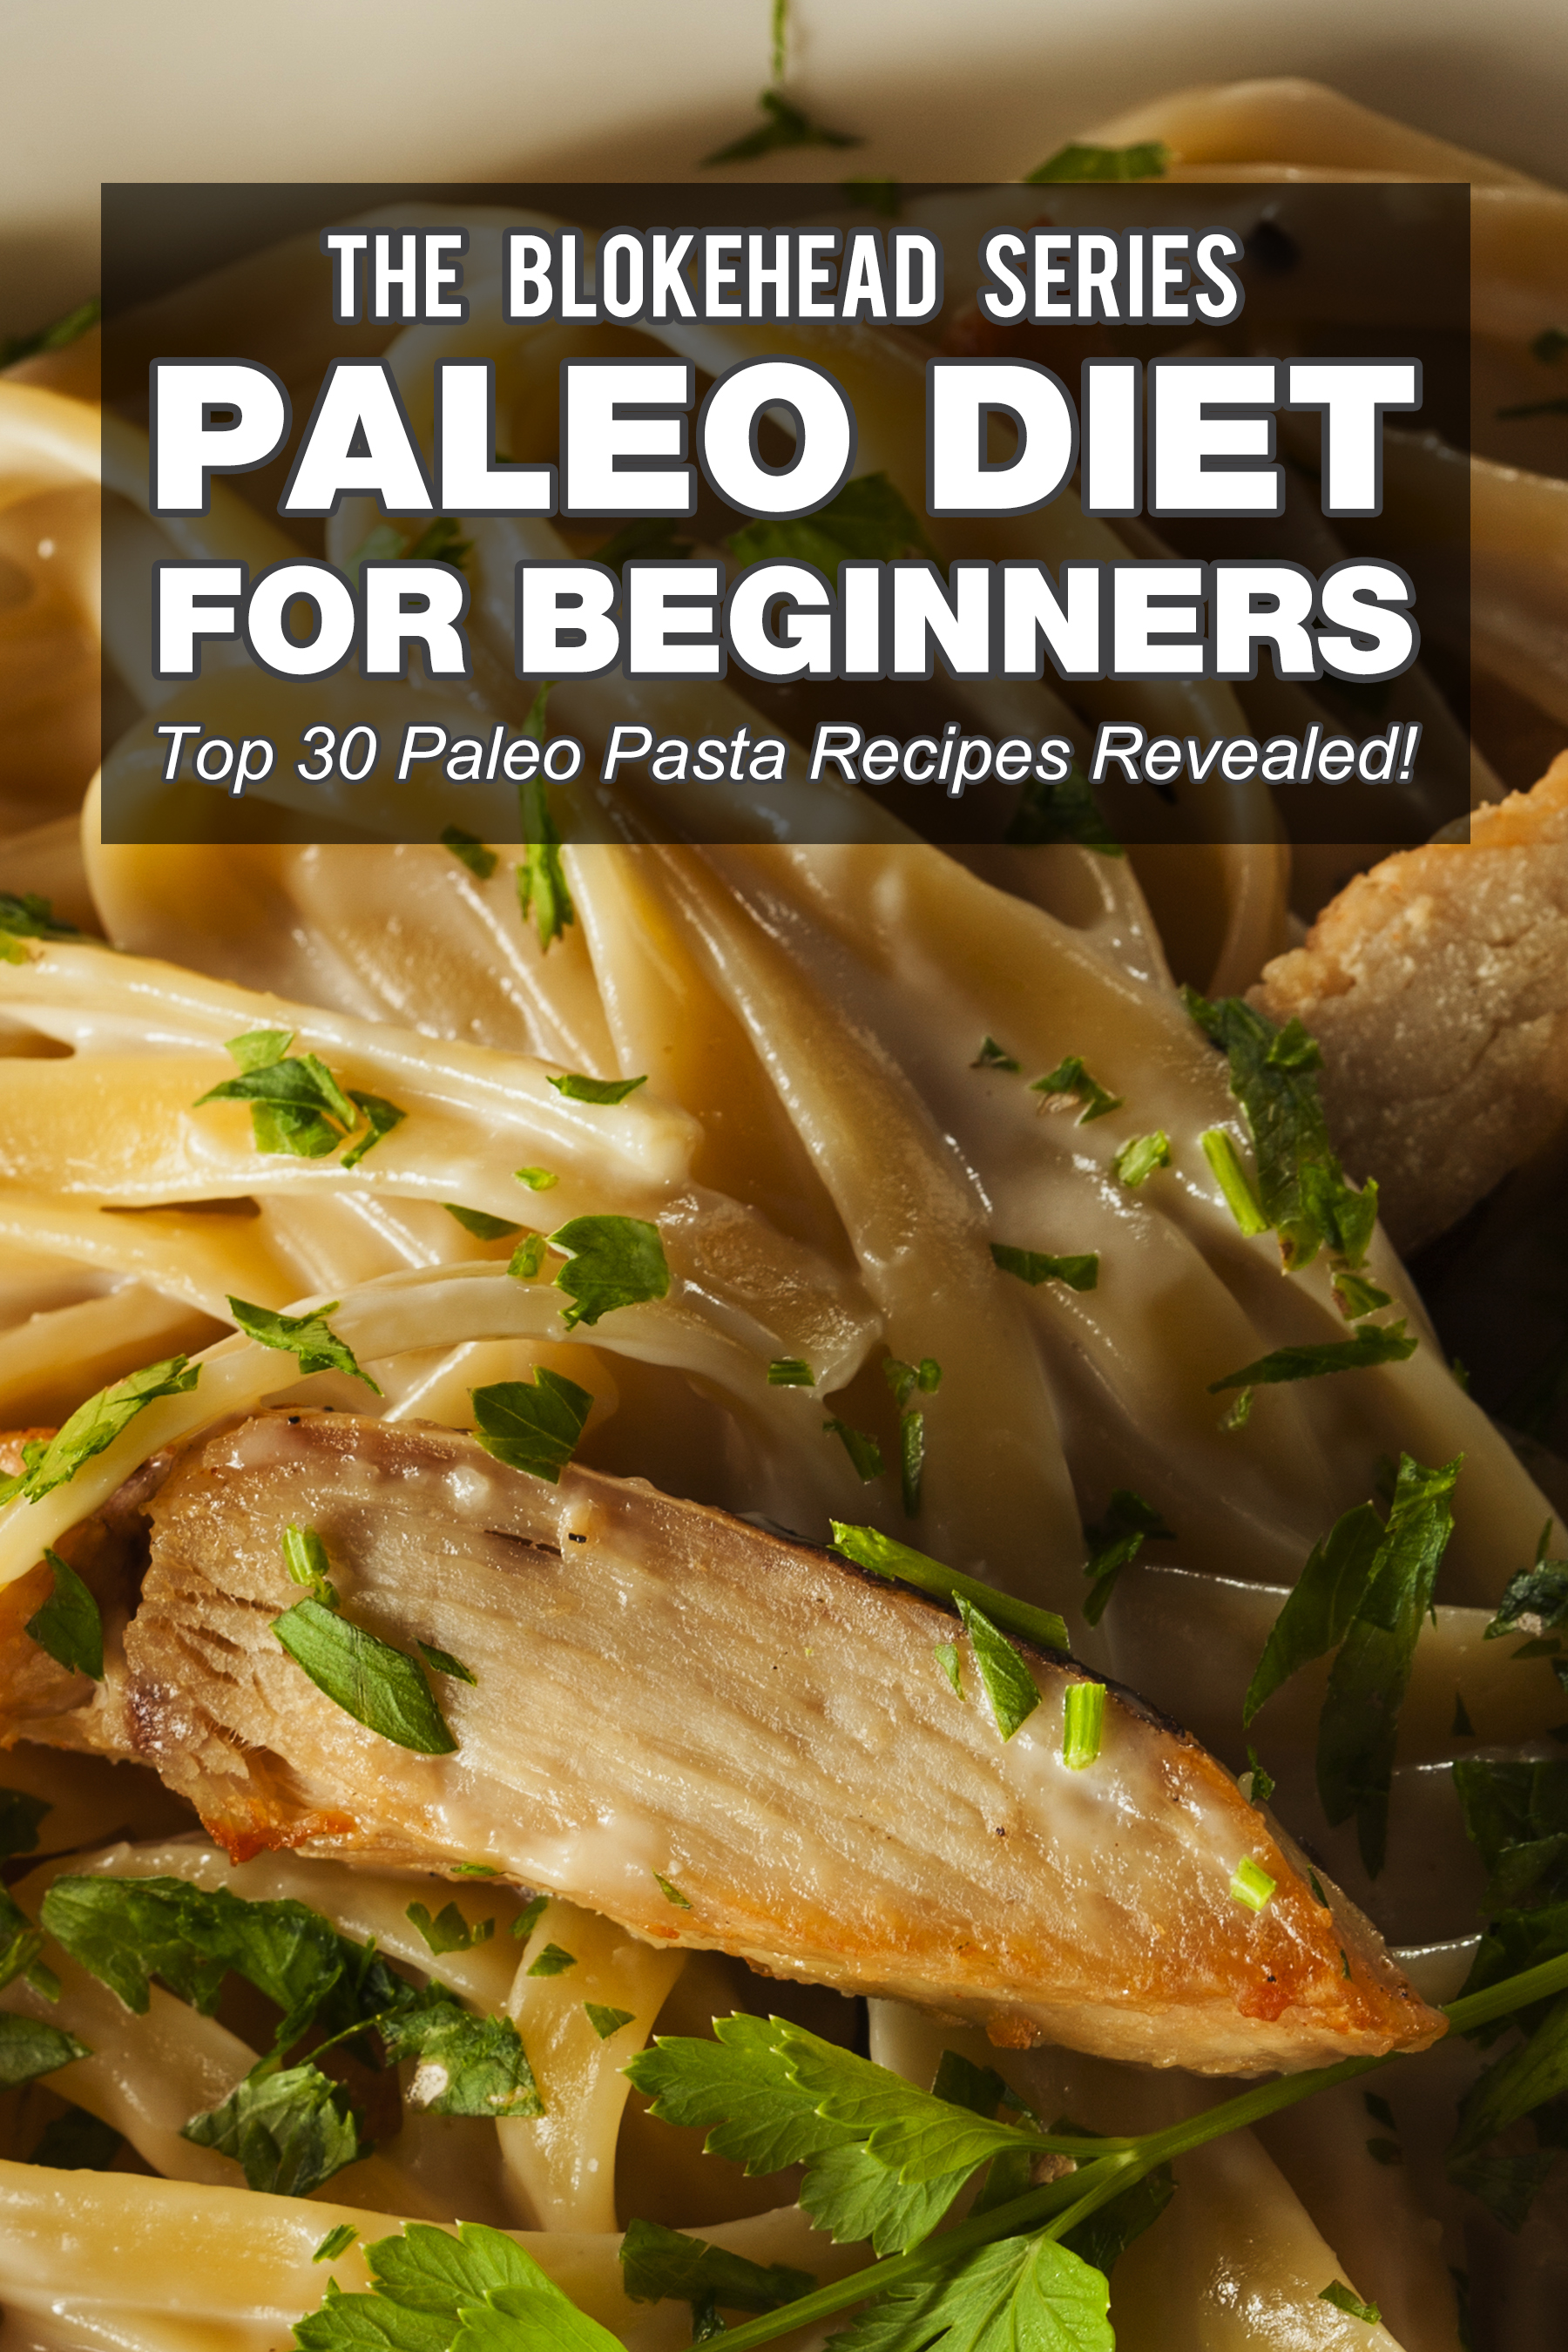 Paleo diet for beginners : top 30 paleo snack recipes revealed!